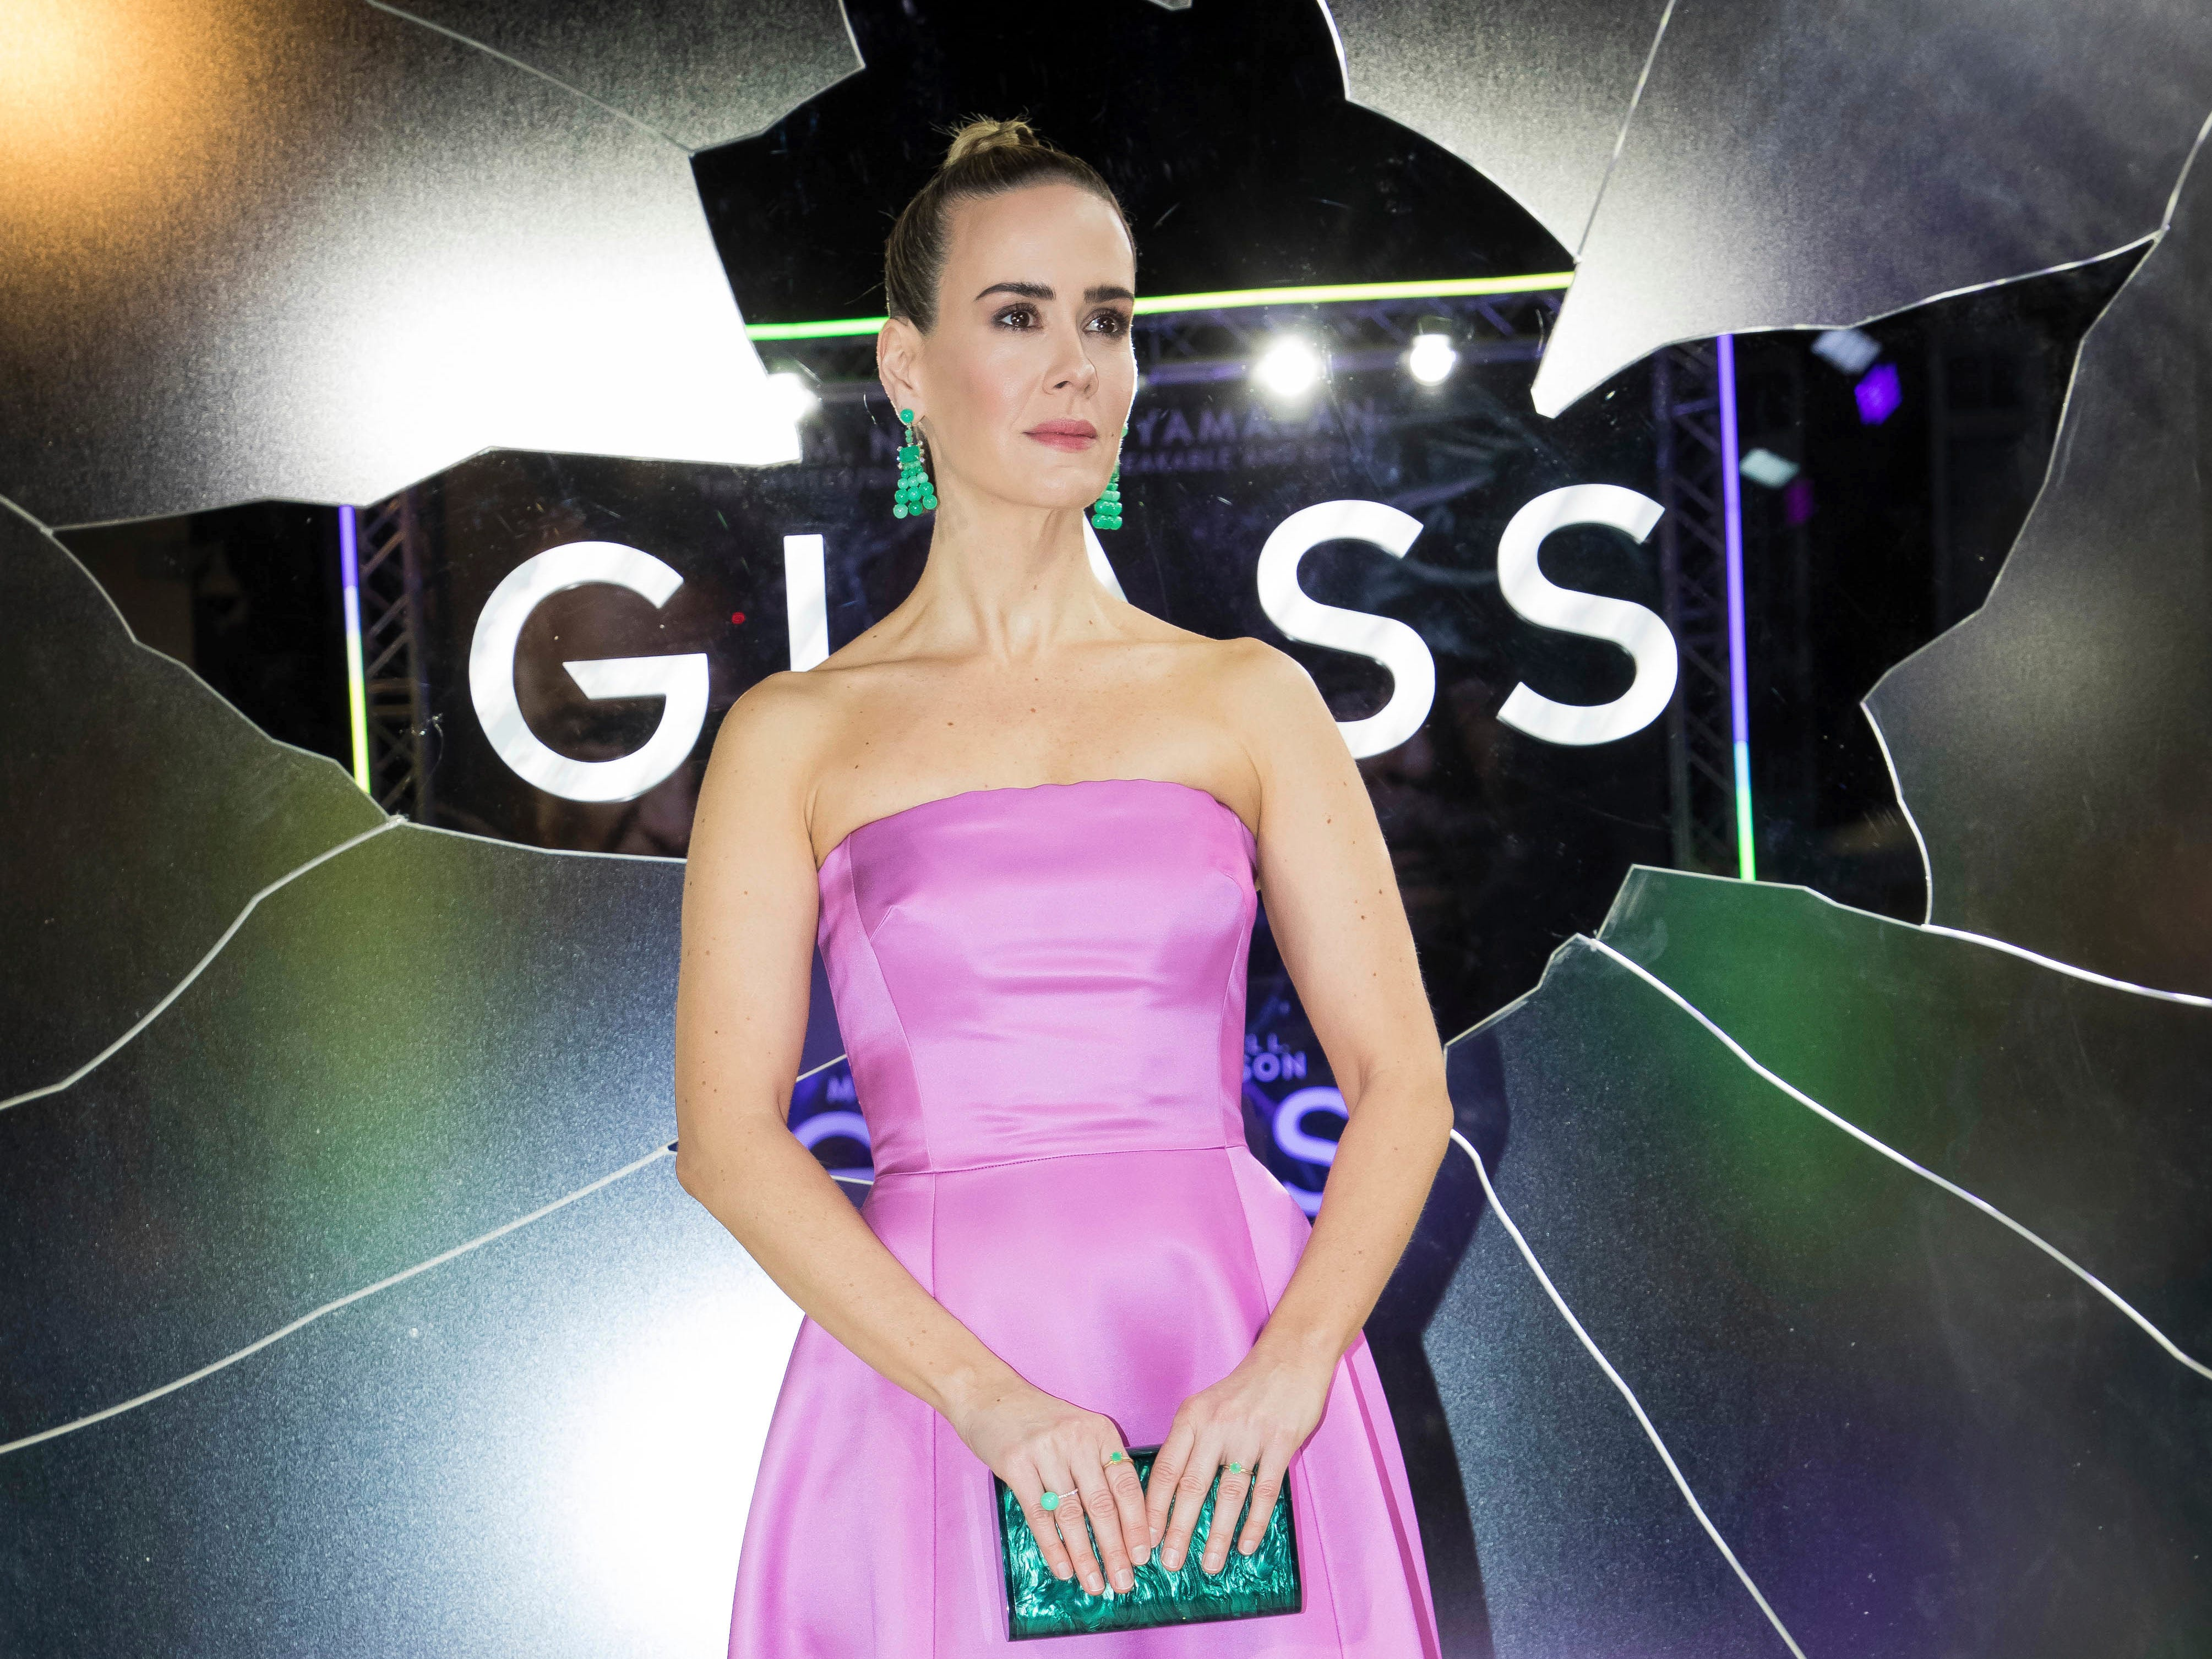 """Actress Sarah Paulson poses for photographers upon arrival at the premiere of the film """"Glass"""" in London on Wednesday, Jan. 9, 2019."""